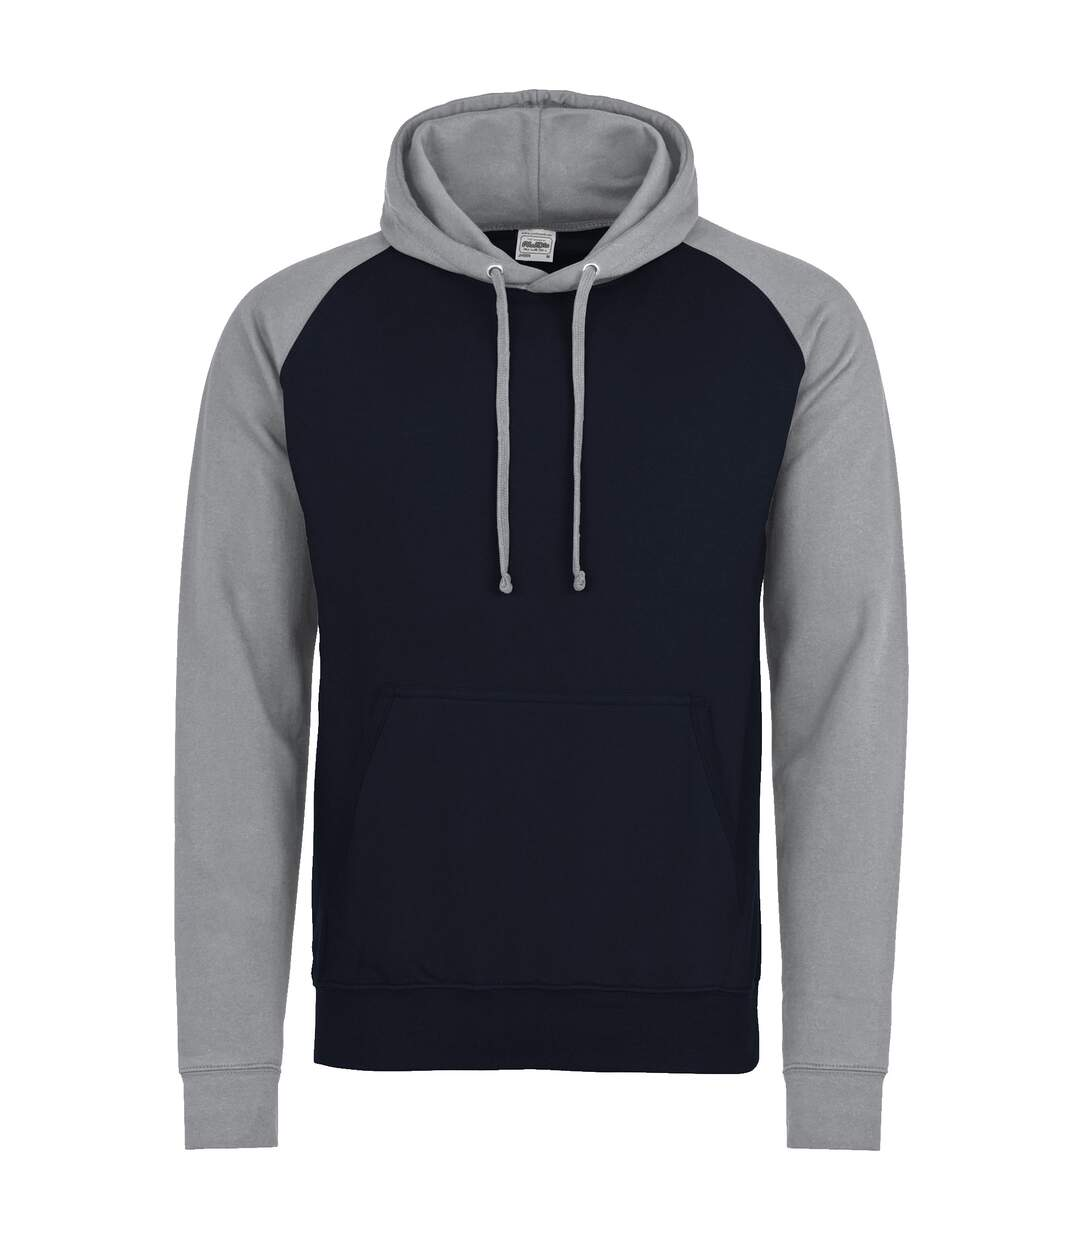 Awdis Just Hoods Adults Unisex Two Tone Hooded Baseball Sweatshirt/Hoodie (Oxford Navy/Heather Grey) - UTRW3928